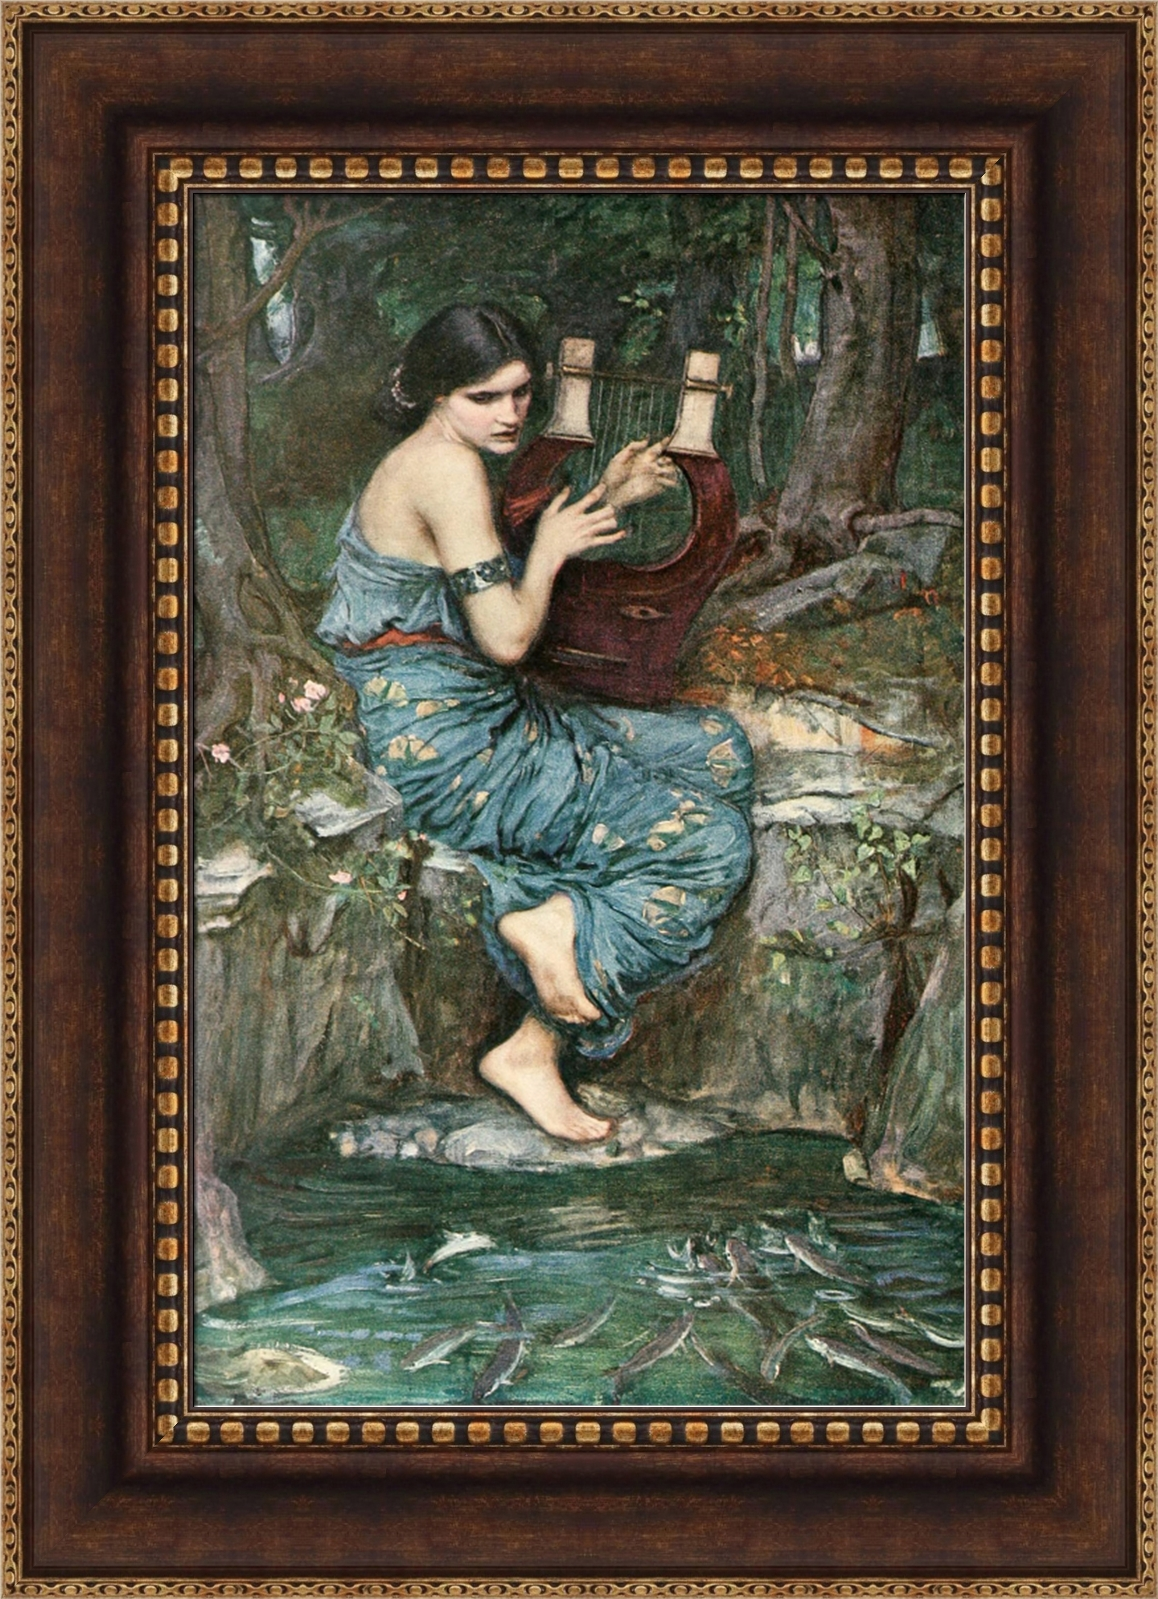 The Charmer Pages Lisa Kudrow For More: John William Waterhouse The Charmer Framed Canvas Giclee